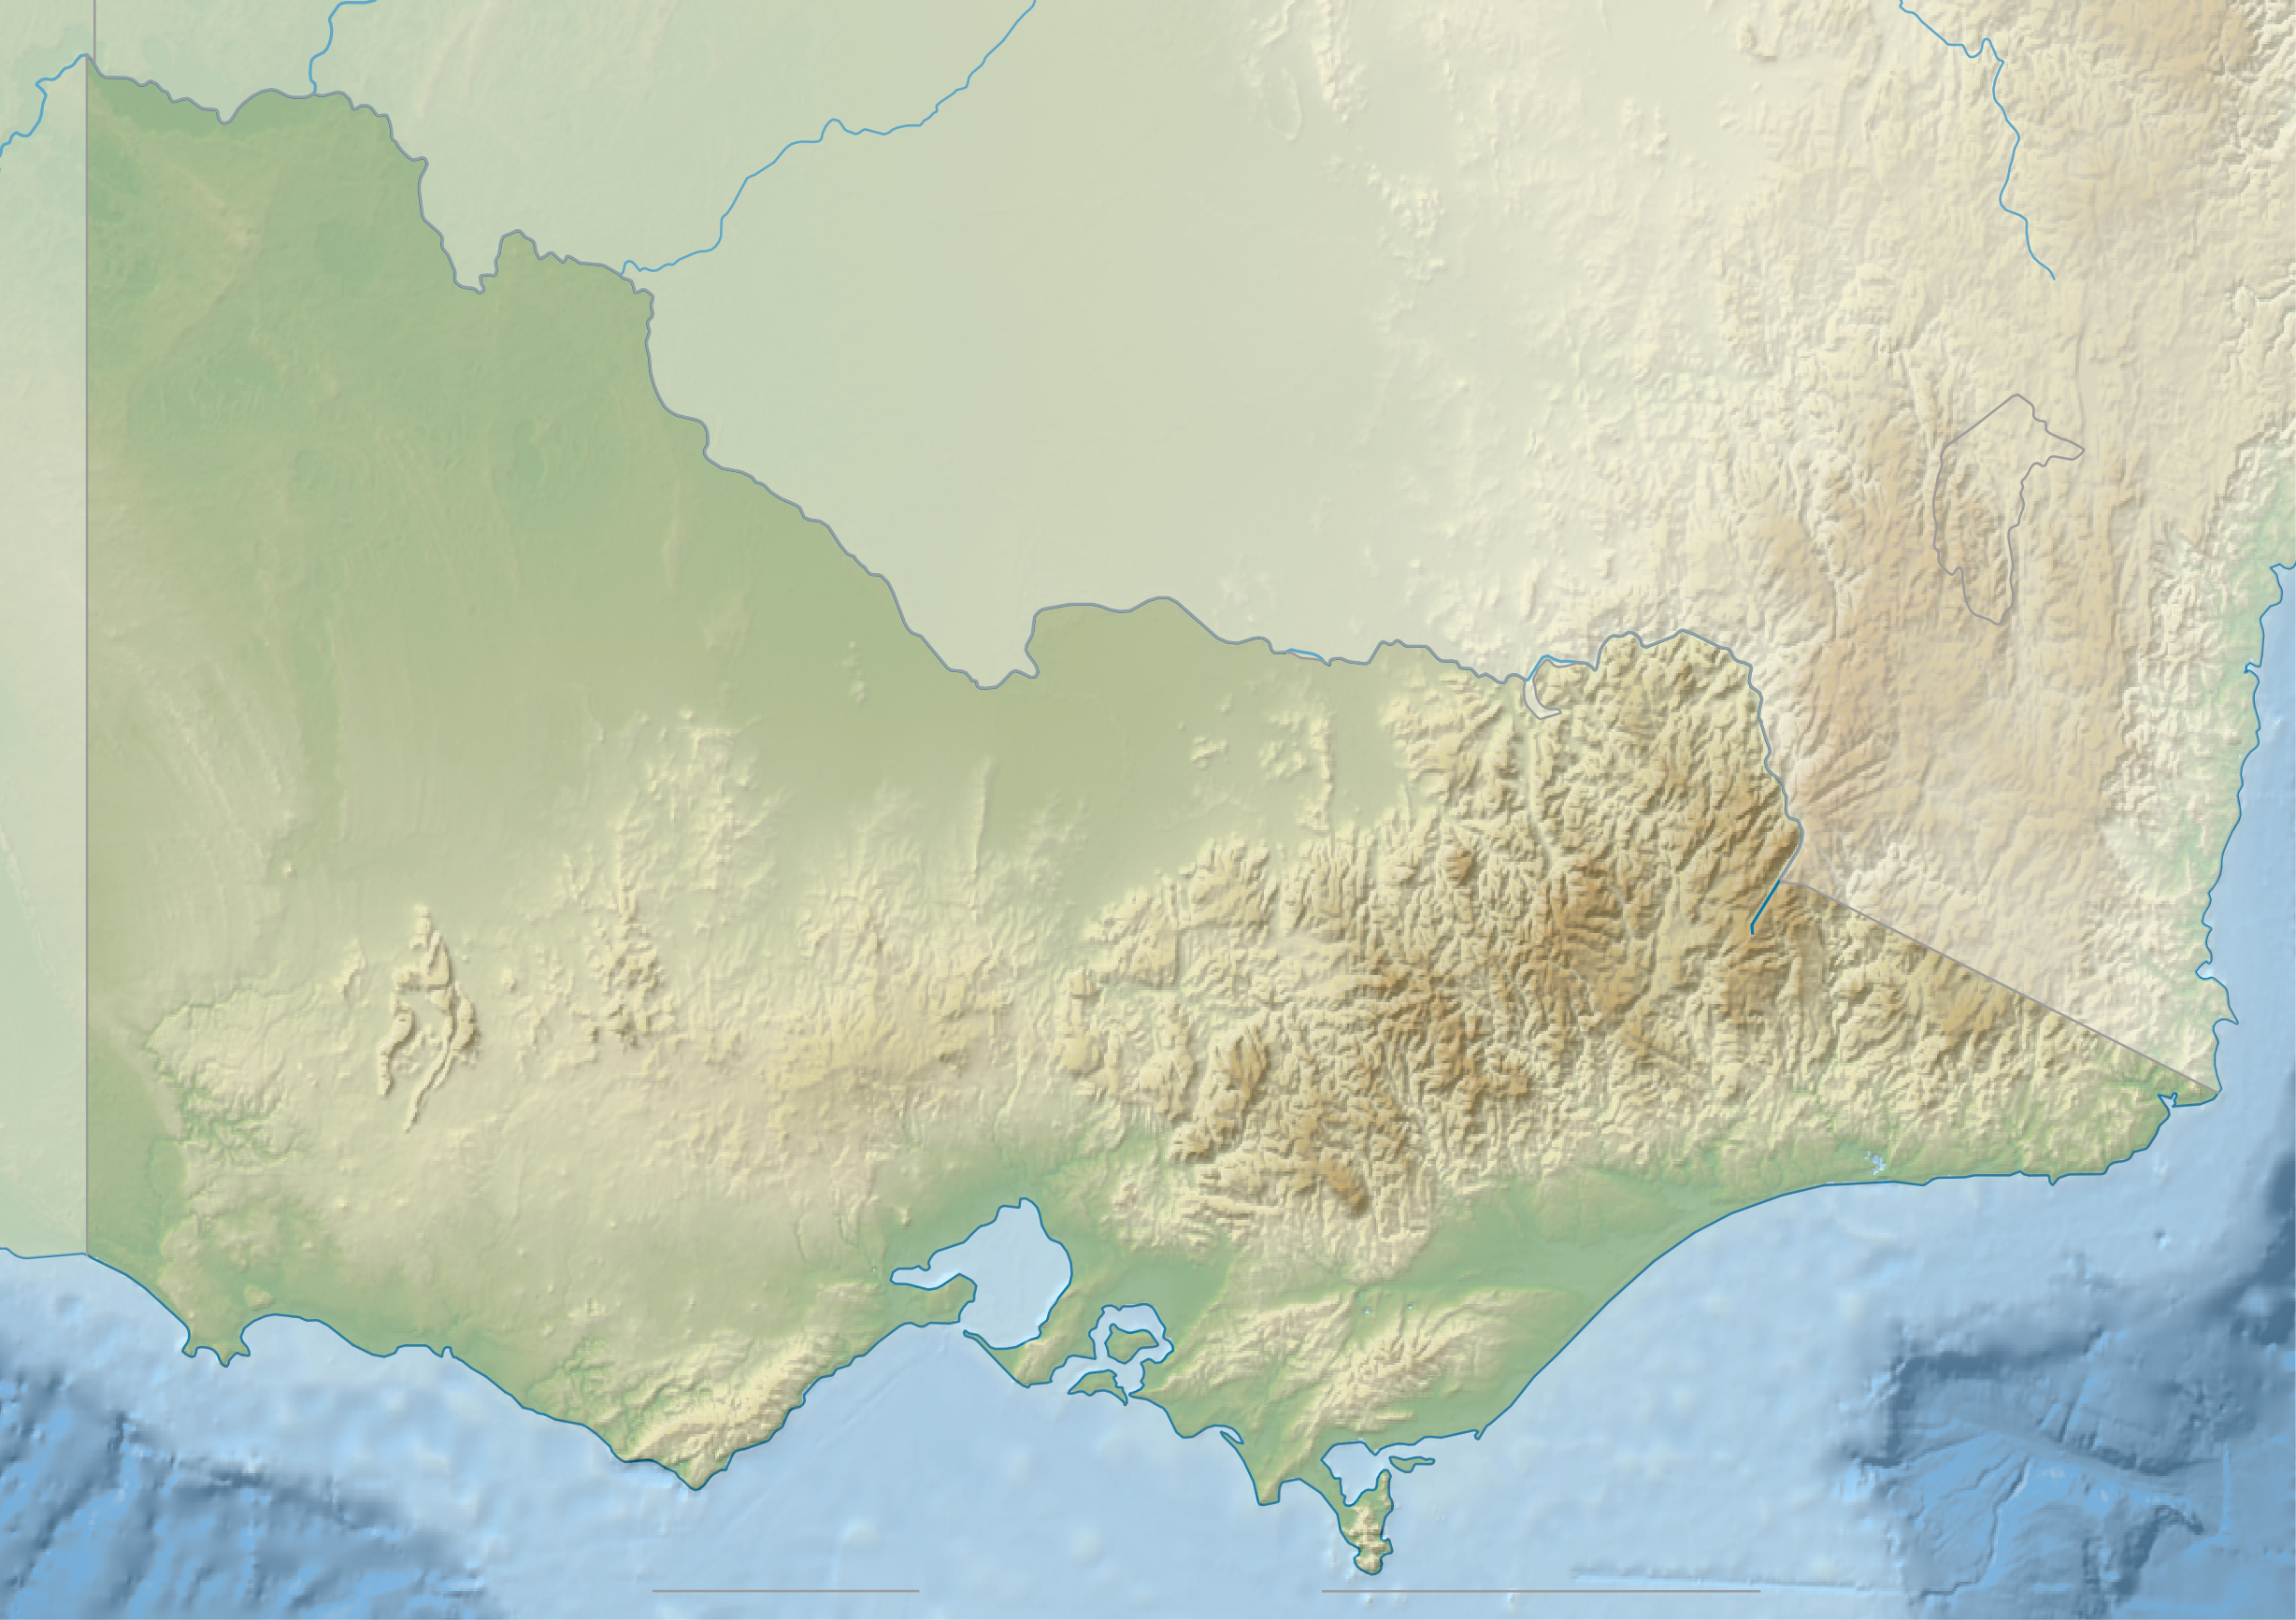 FileAustralia Victoria relief location map blankpng Wikimedia – Map Victoria Australia